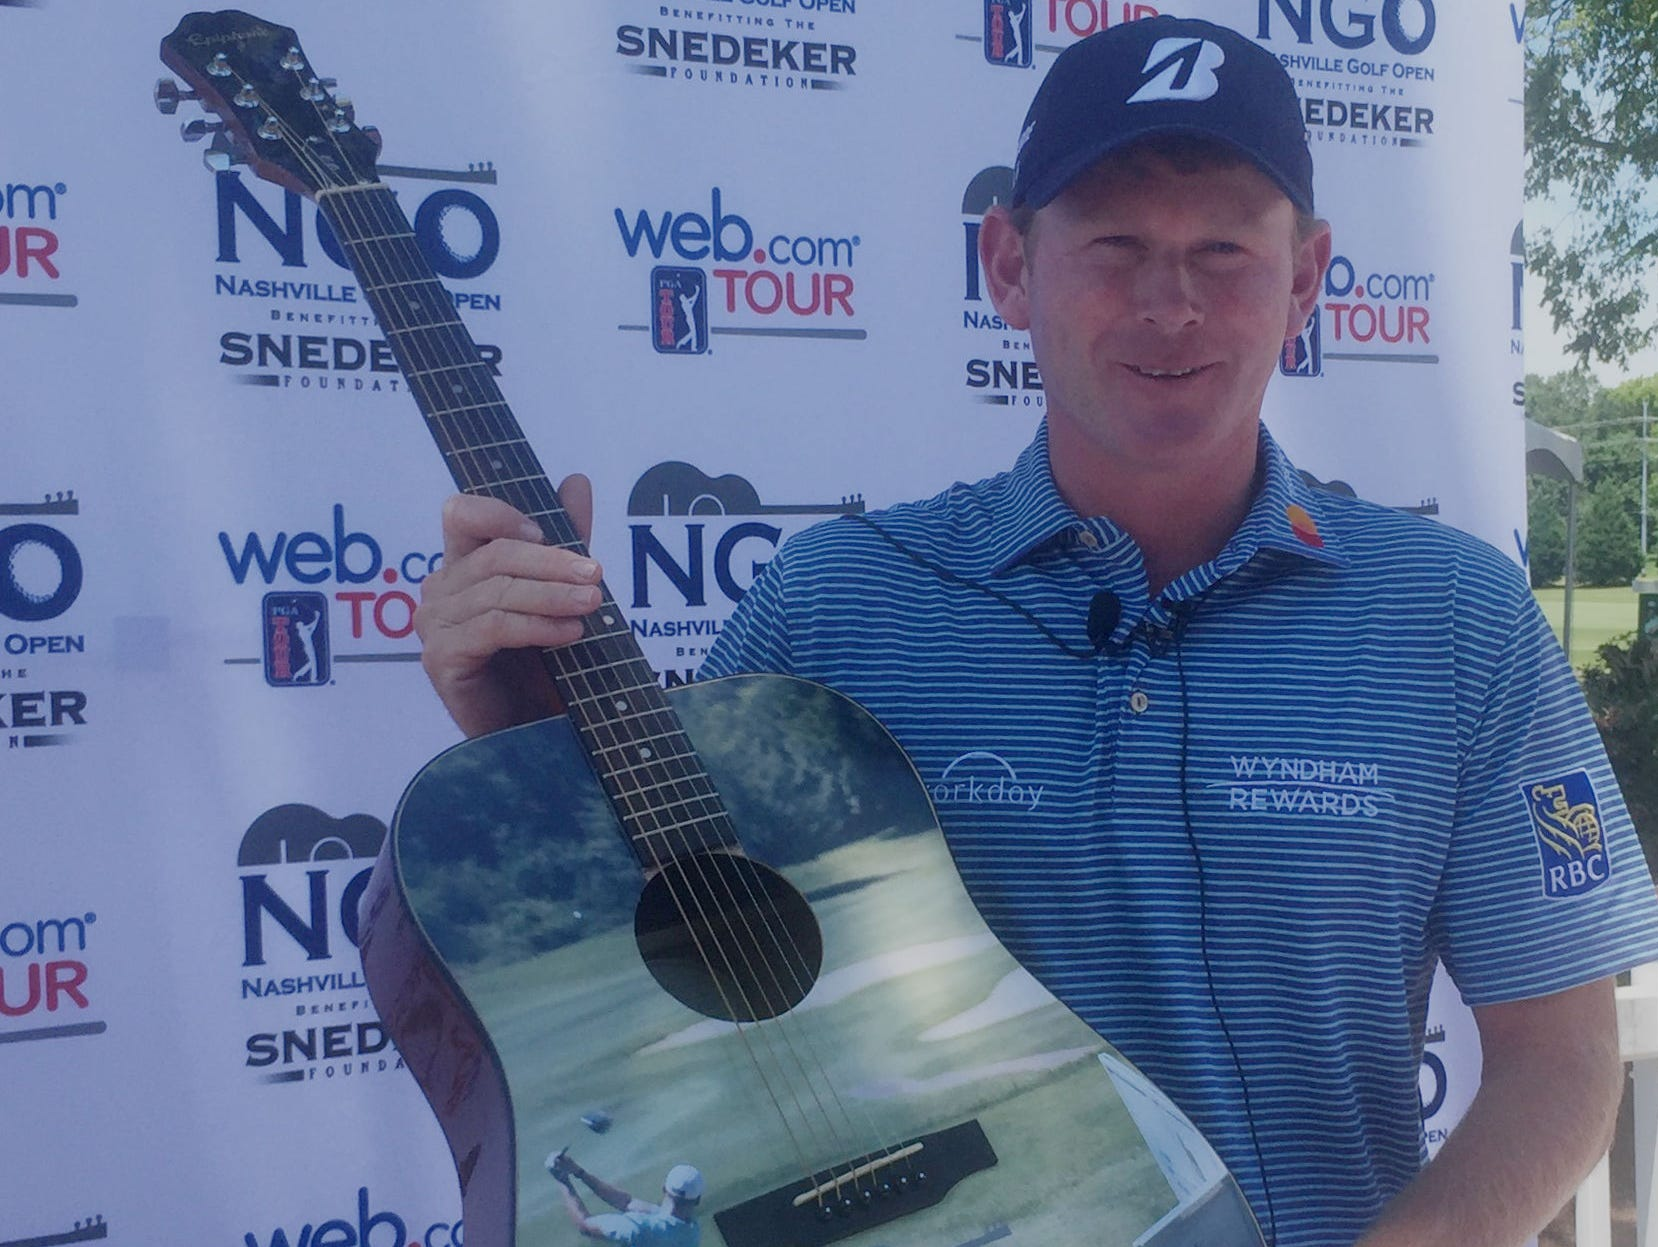 Brandt Snedeker shows off the guitar trophy for the Nashville Golf Open Benefiting the Snedeker Foundation, which begins Thursday at Nashville Golf and Athletic Club.